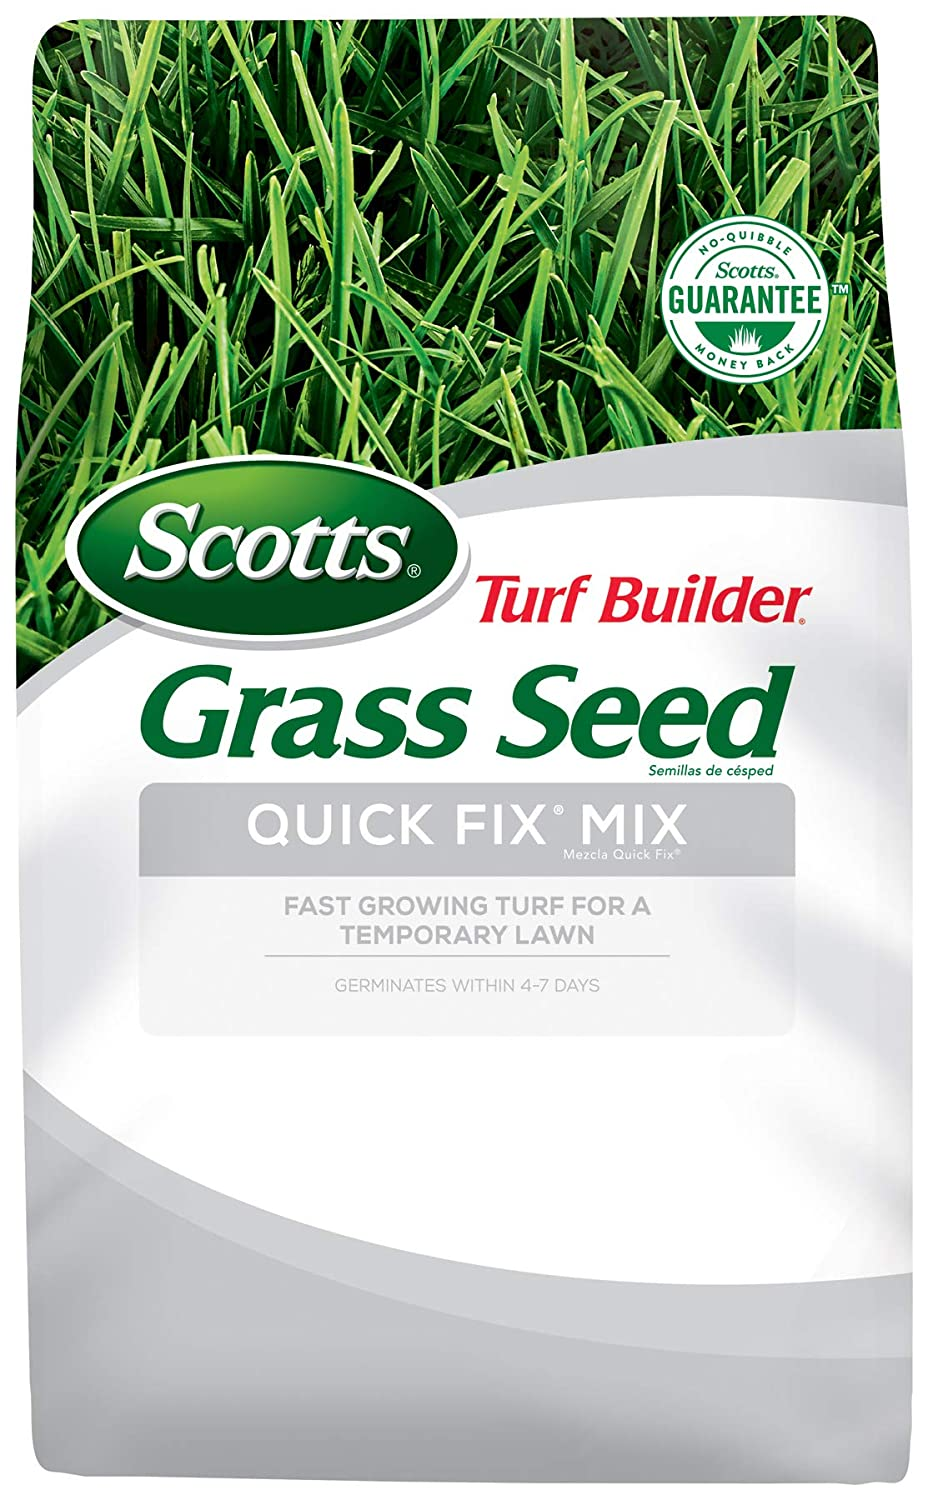 Scotts Turf Builder Quick Fix Mix, 3 Pounds